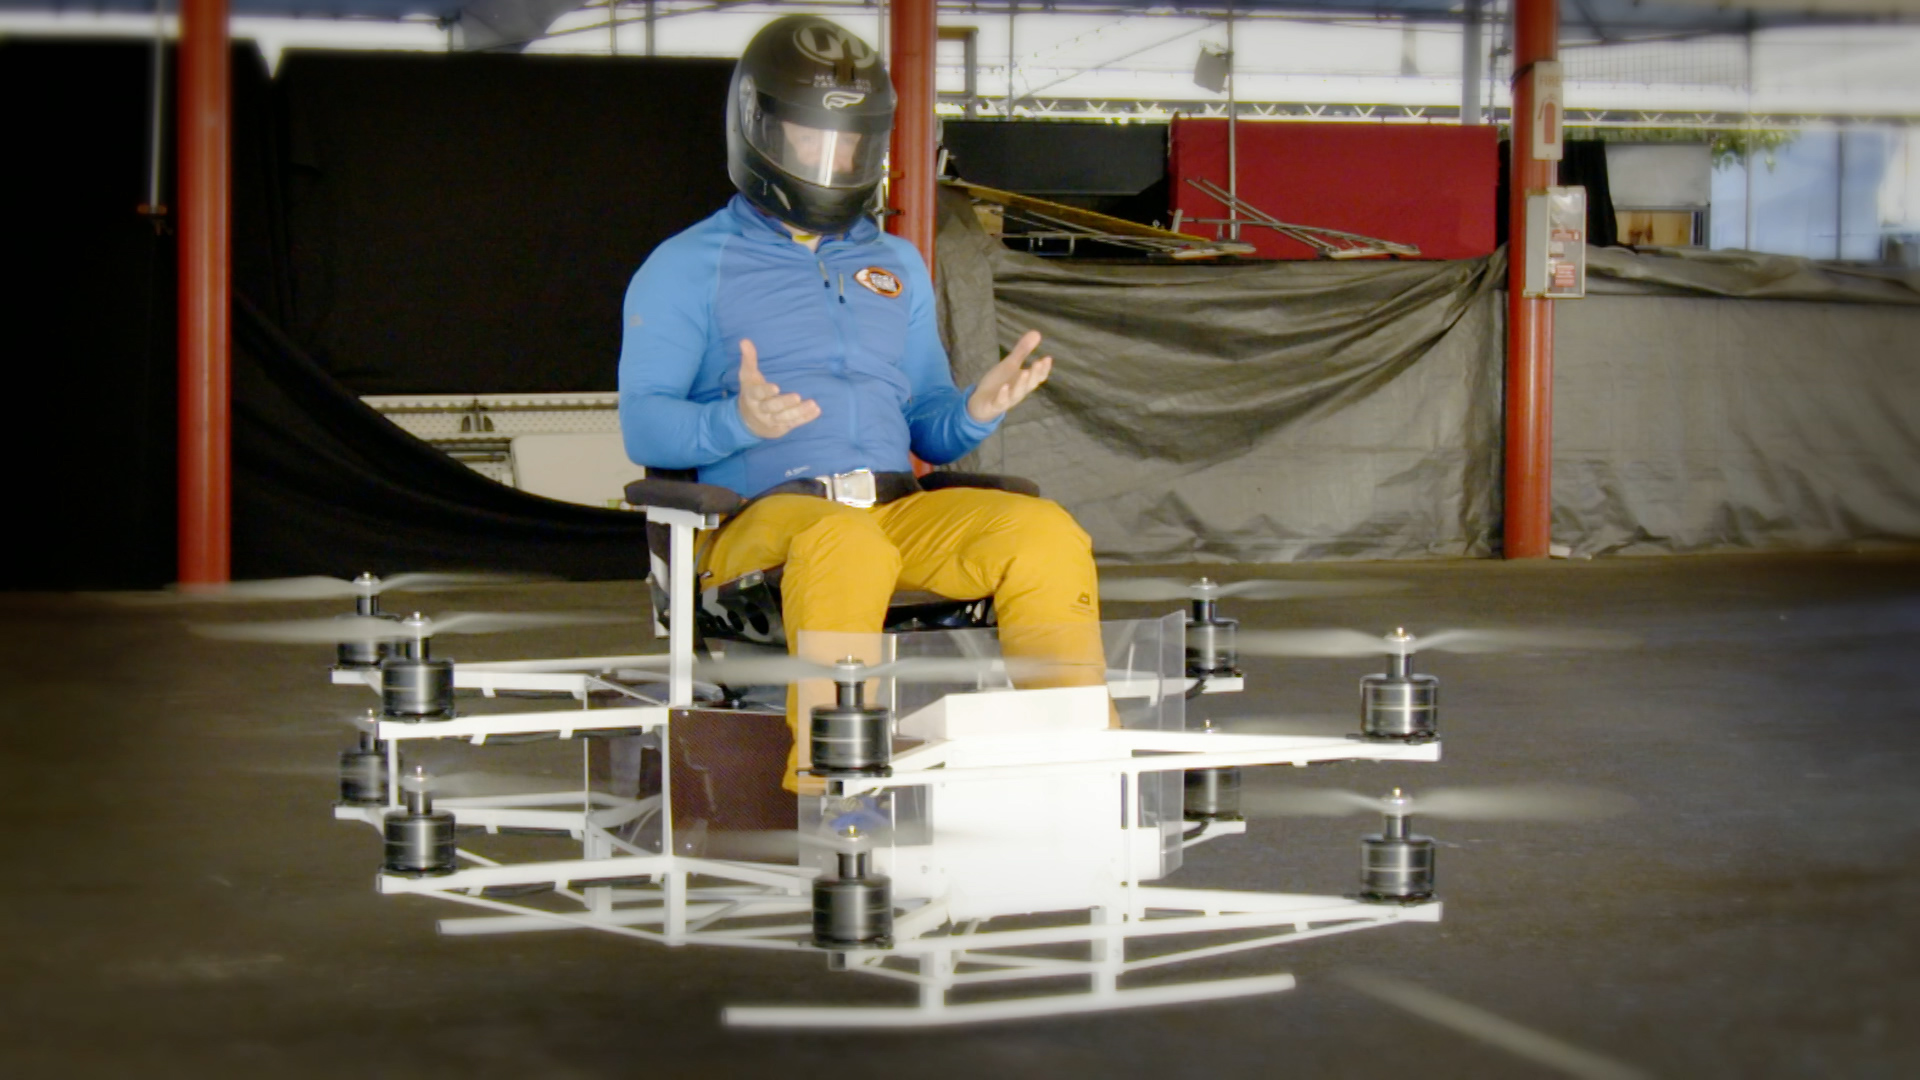 CBBC Beyond Bionic - Andy Torbet on a flying chair